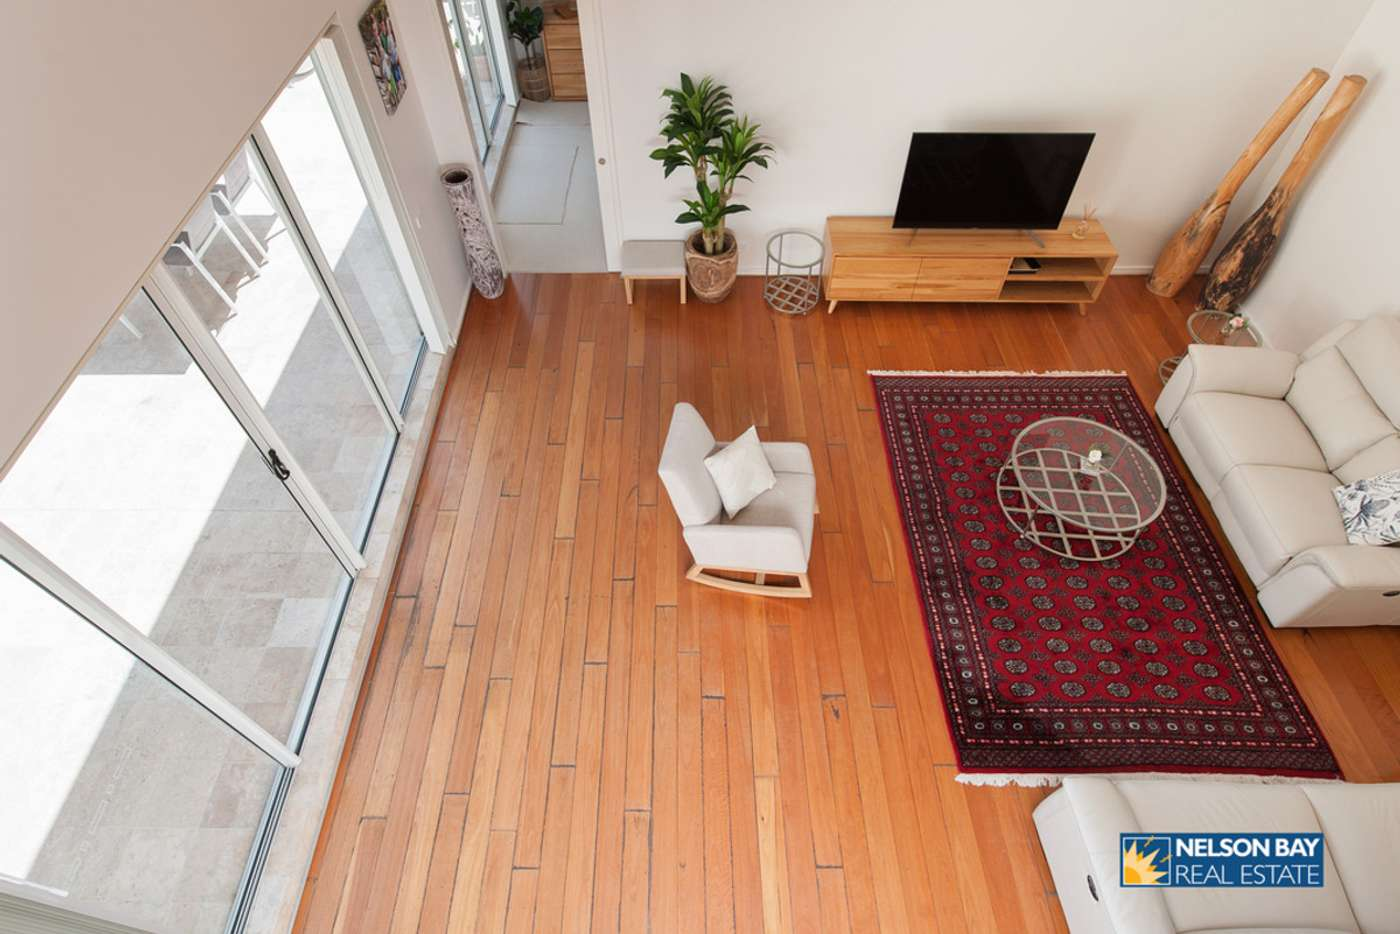 Seventh view of Homely apartment listing, 84/1A Tomaree Street, Nelson Bay NSW 2315